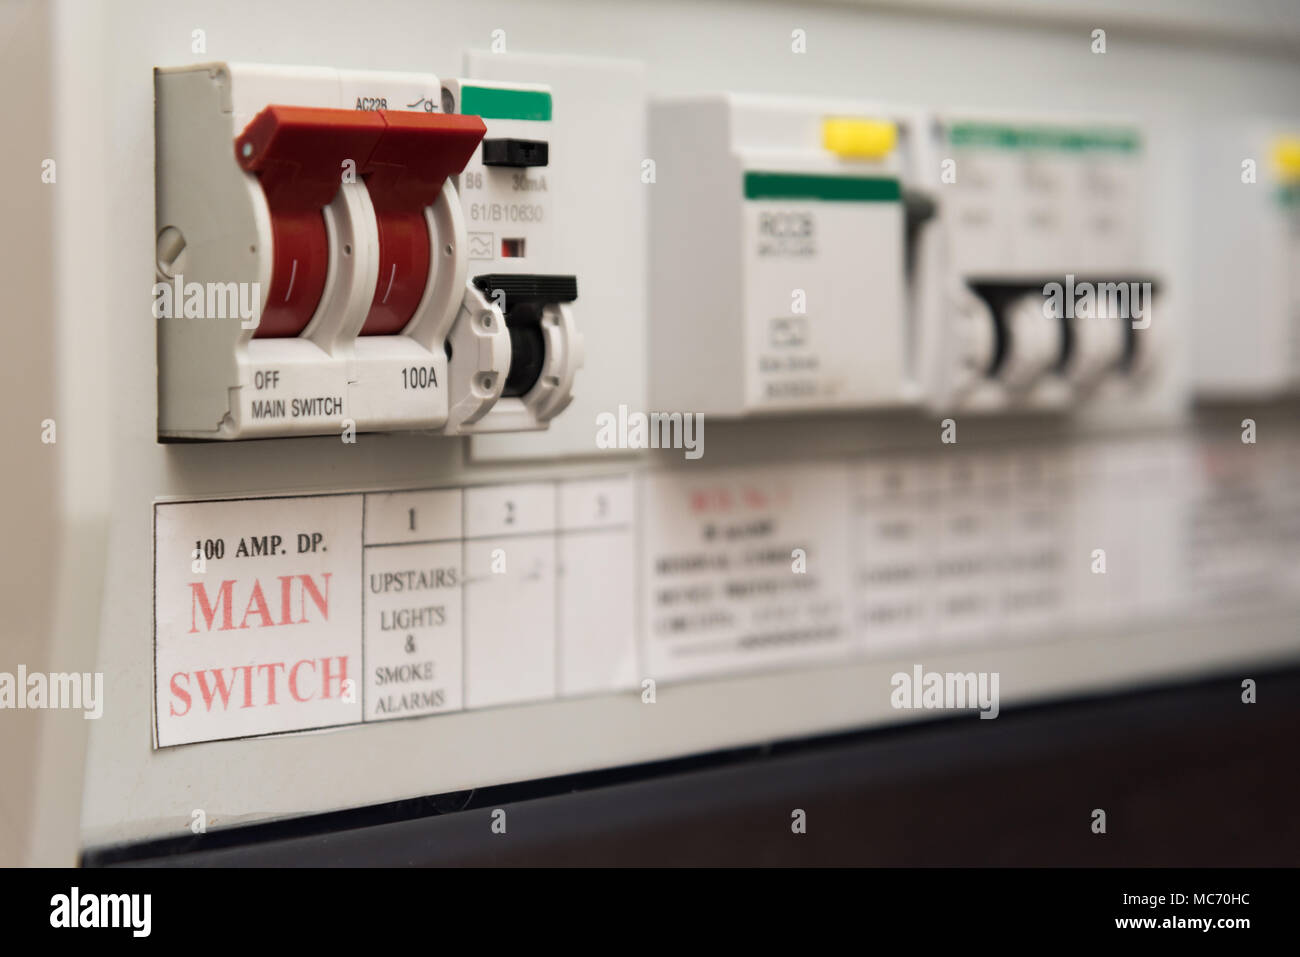 hight resolution of close up of a mcb micro circuit breaker on a uk domestic electrical consumer unit or fuse box